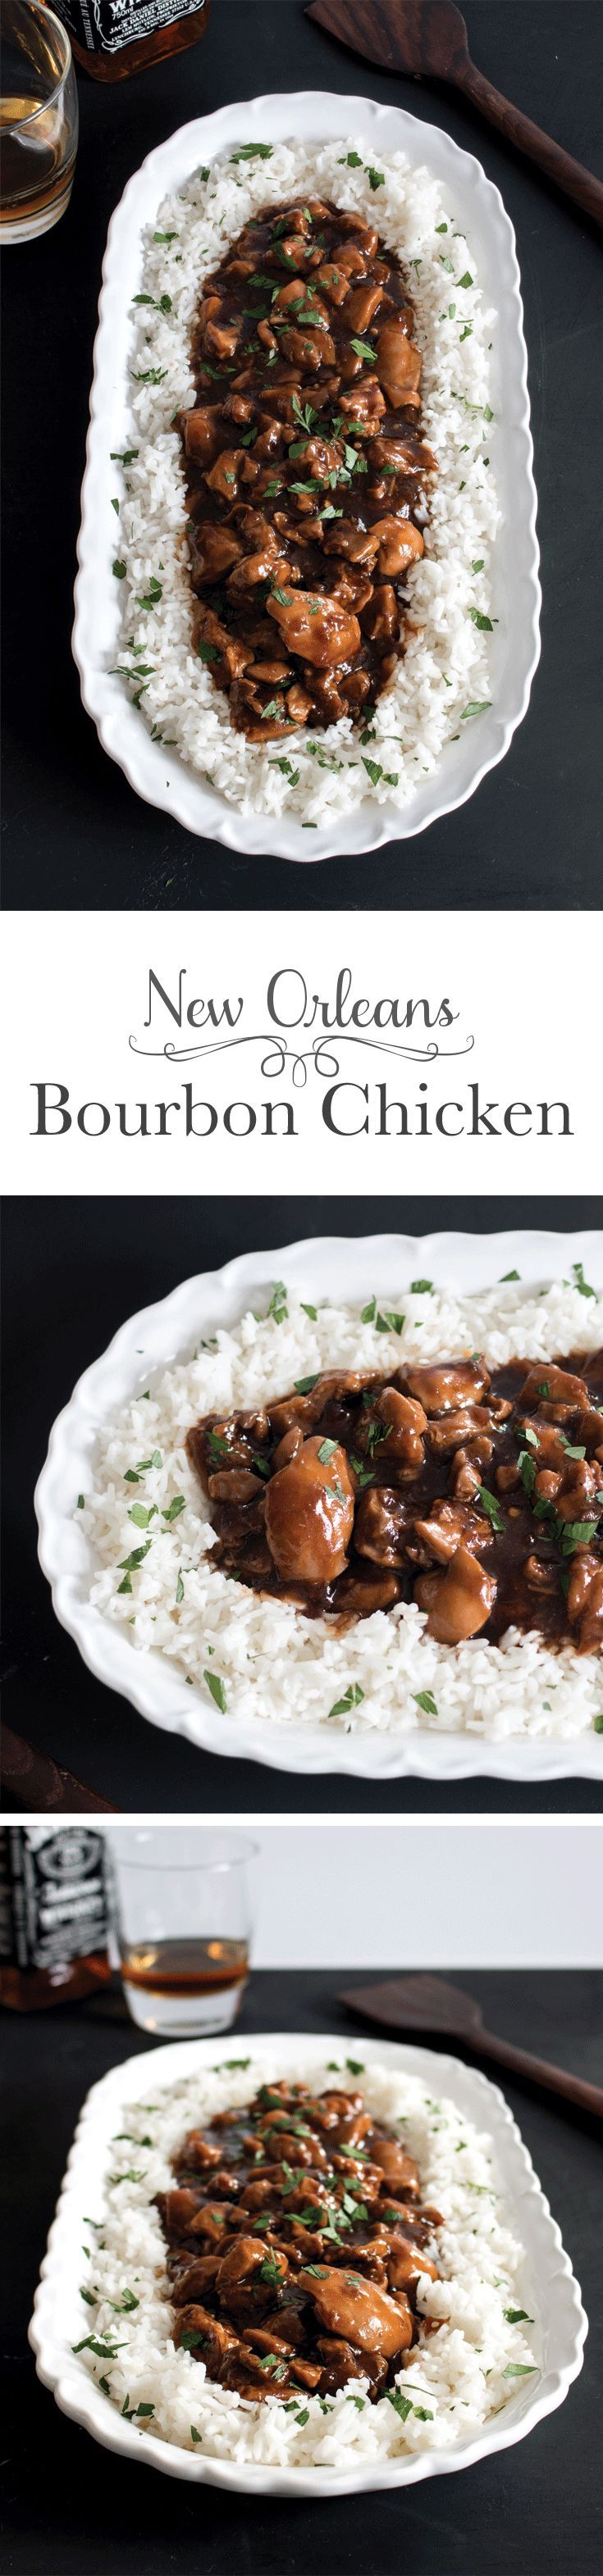 New Orleans Bourbon chicken